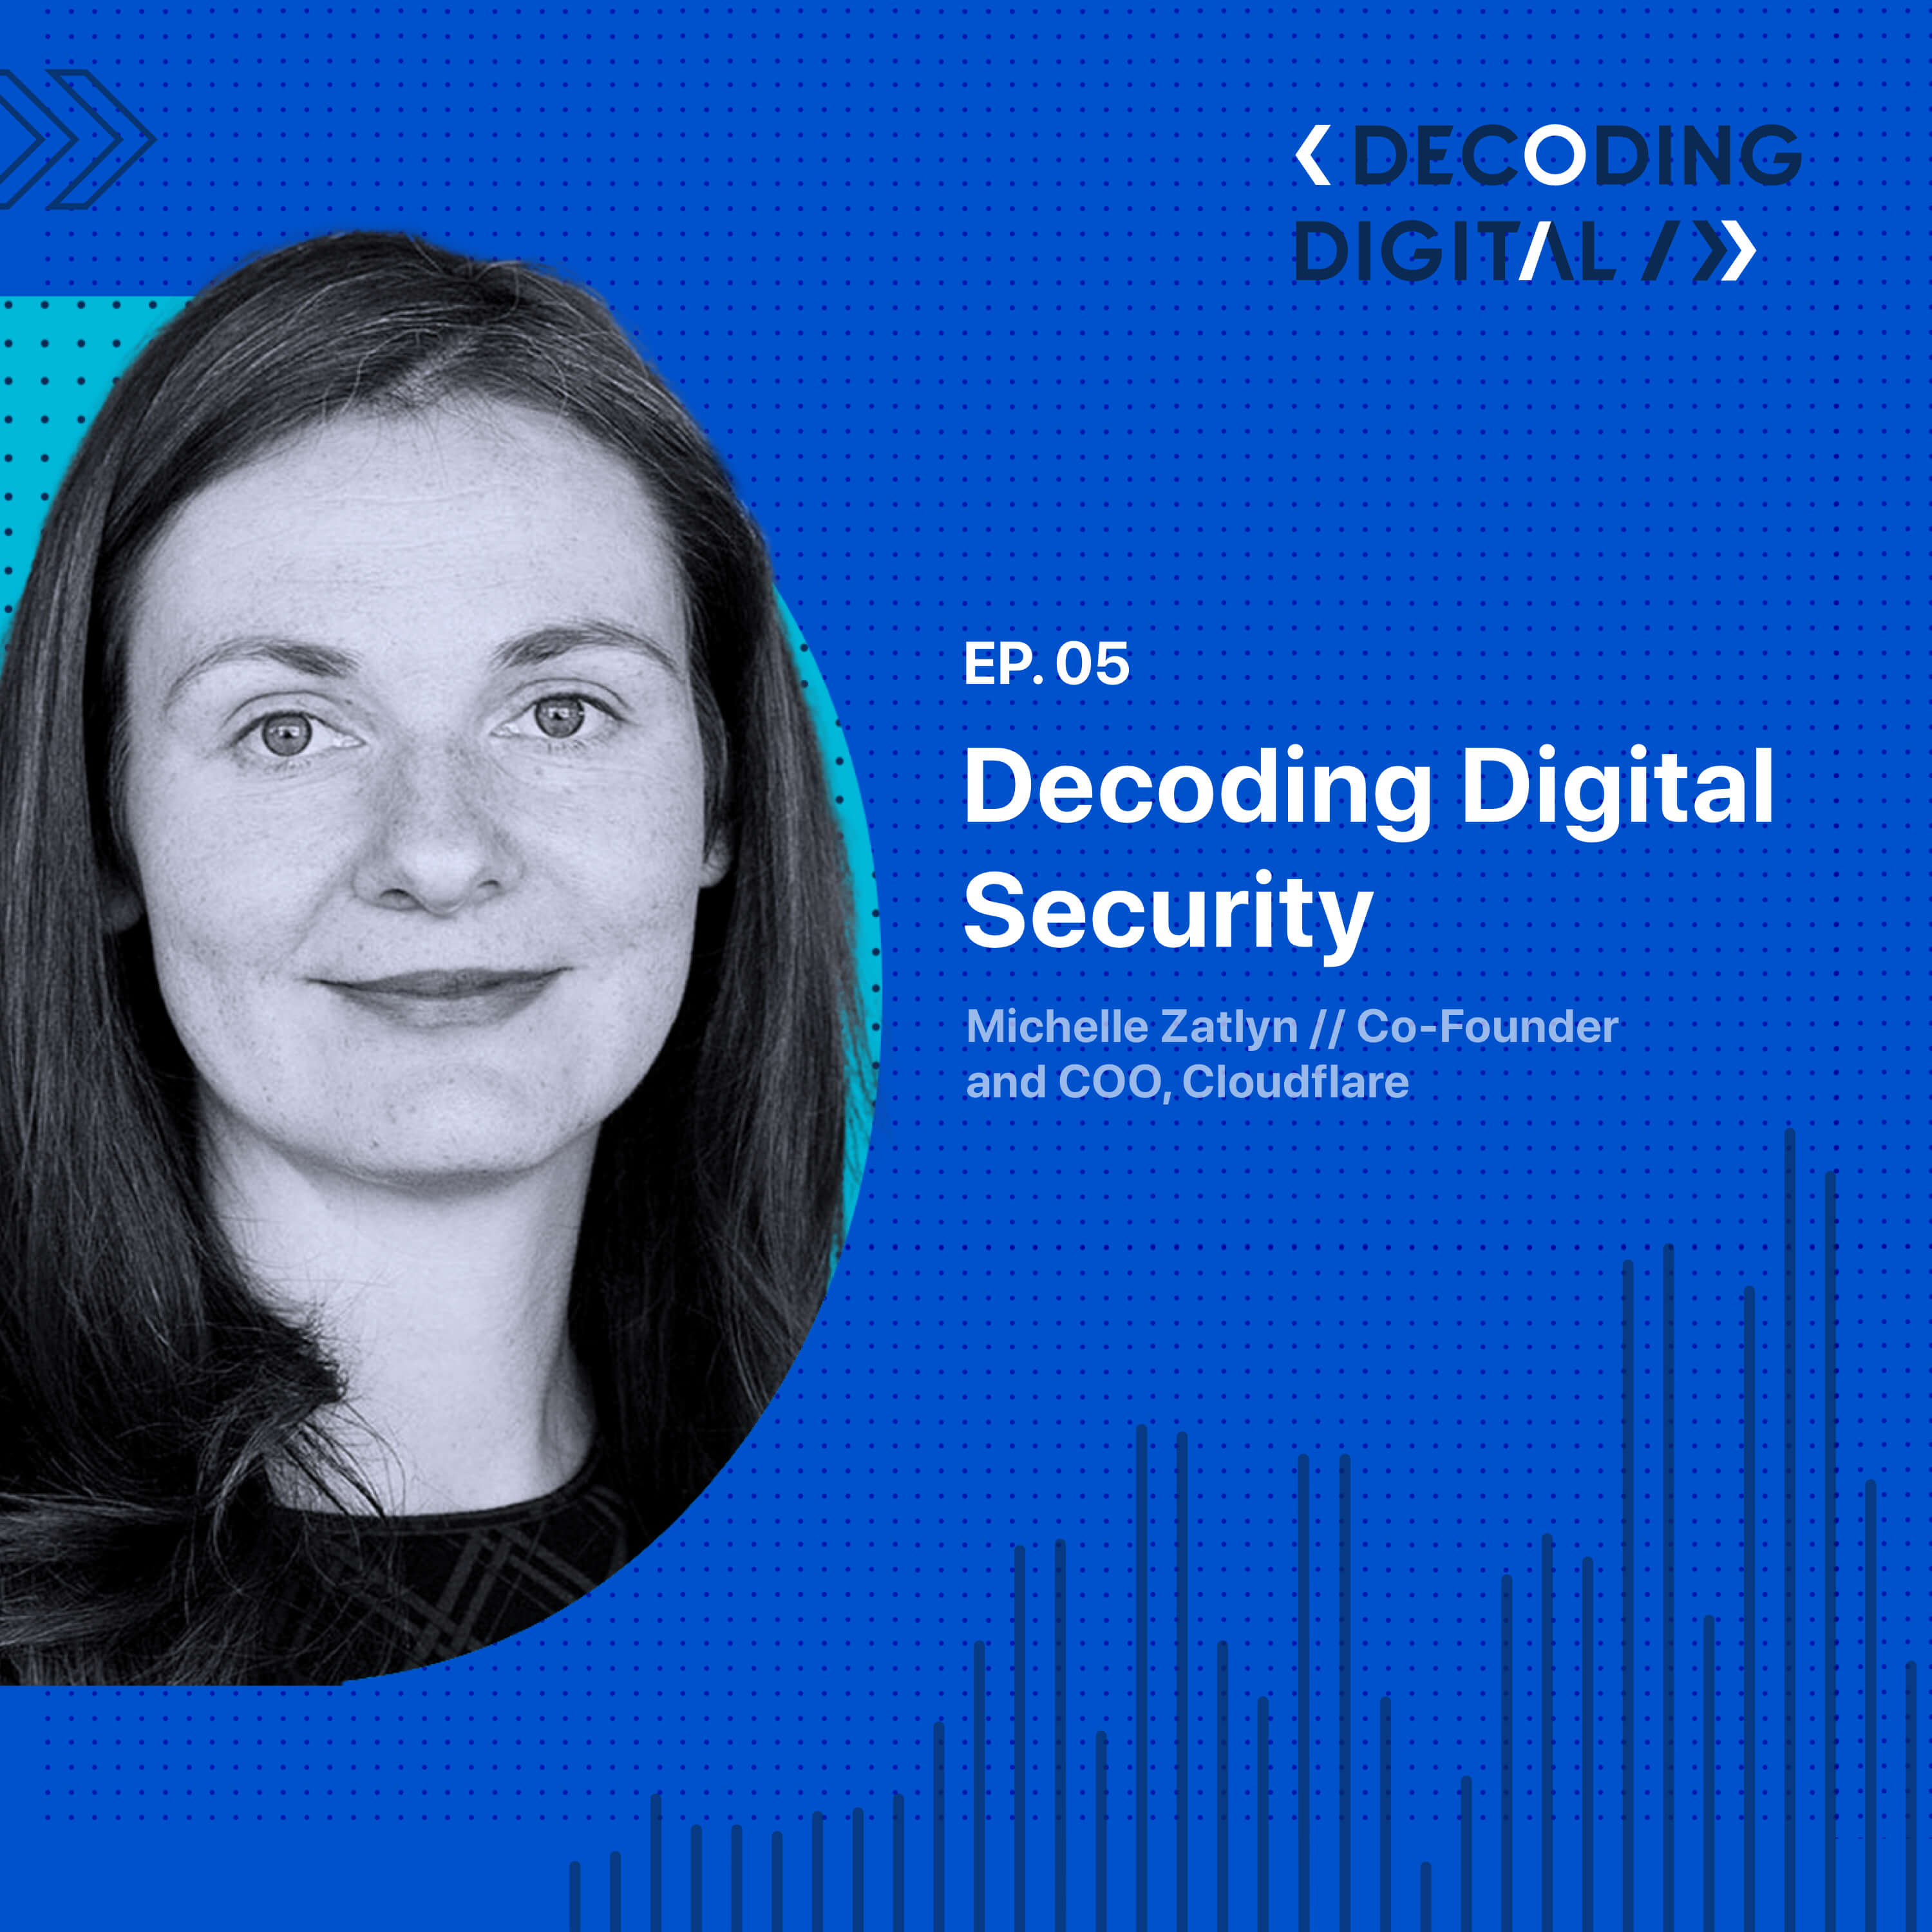 Decoding Digital Security: Michelle Zatlyn on Protecting the Web